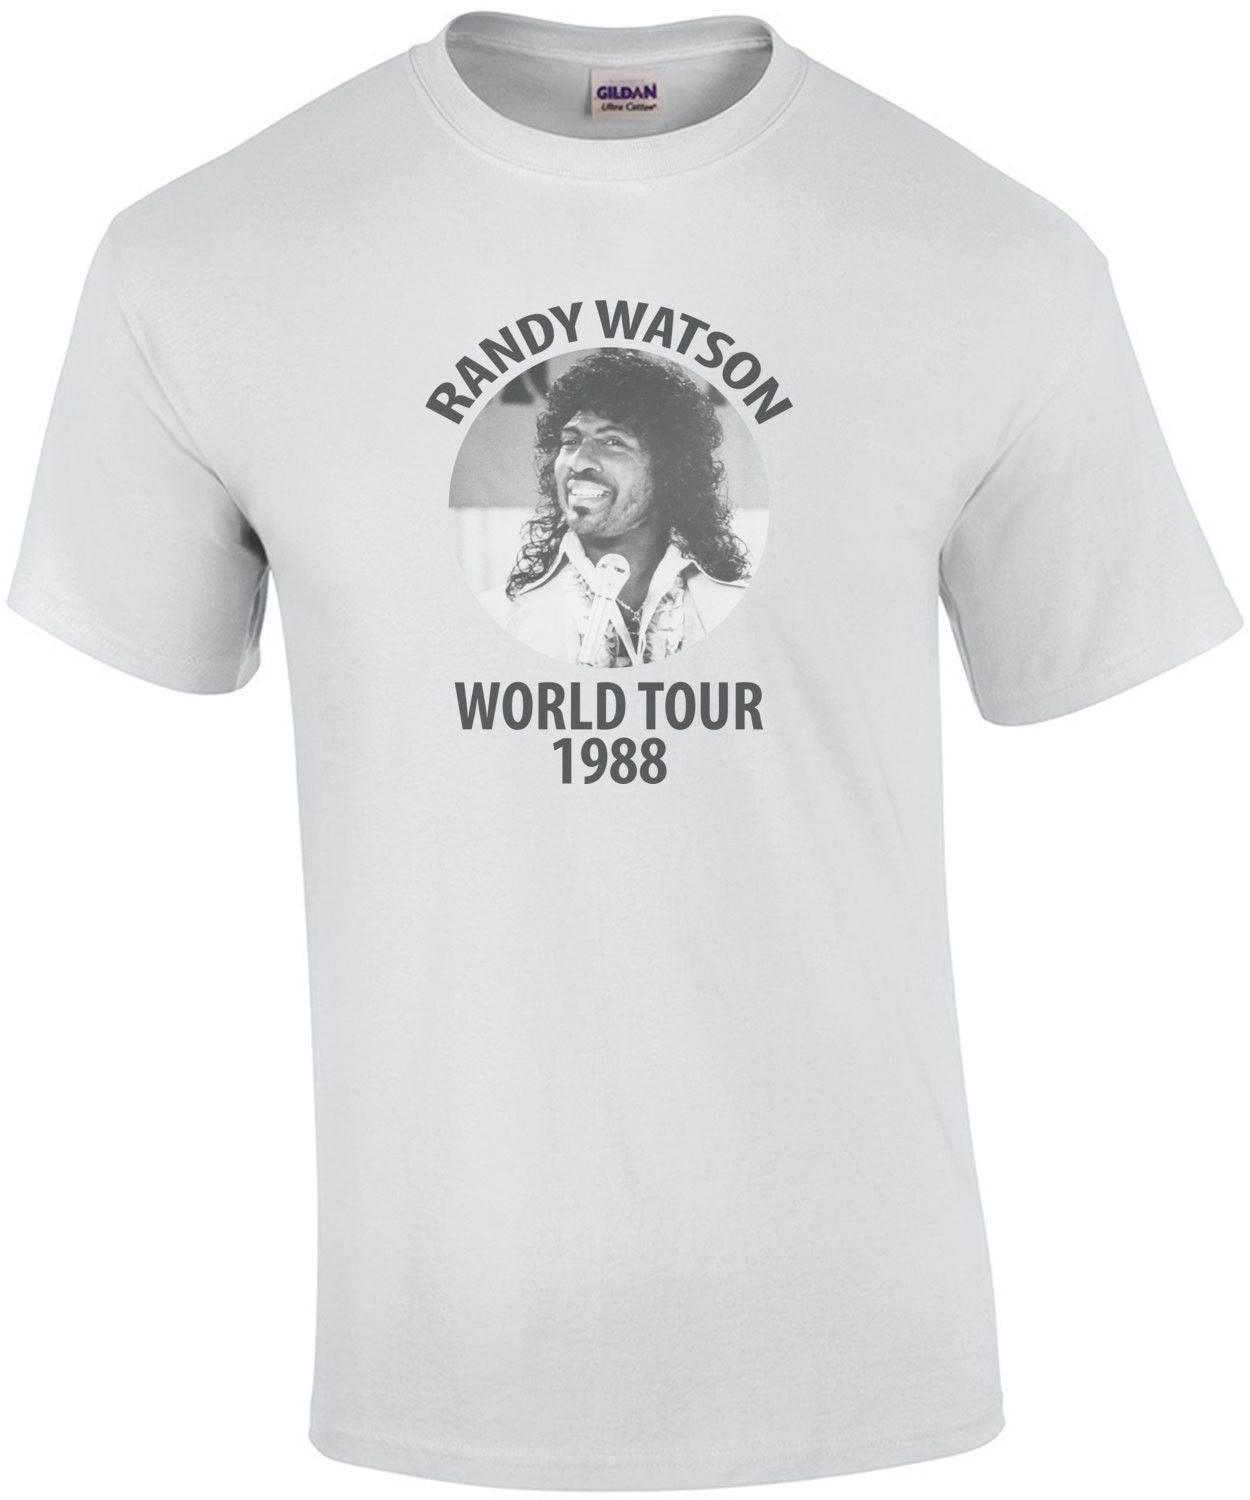 Randy Watson World Tour 1988 - Coming To America T-Shirt